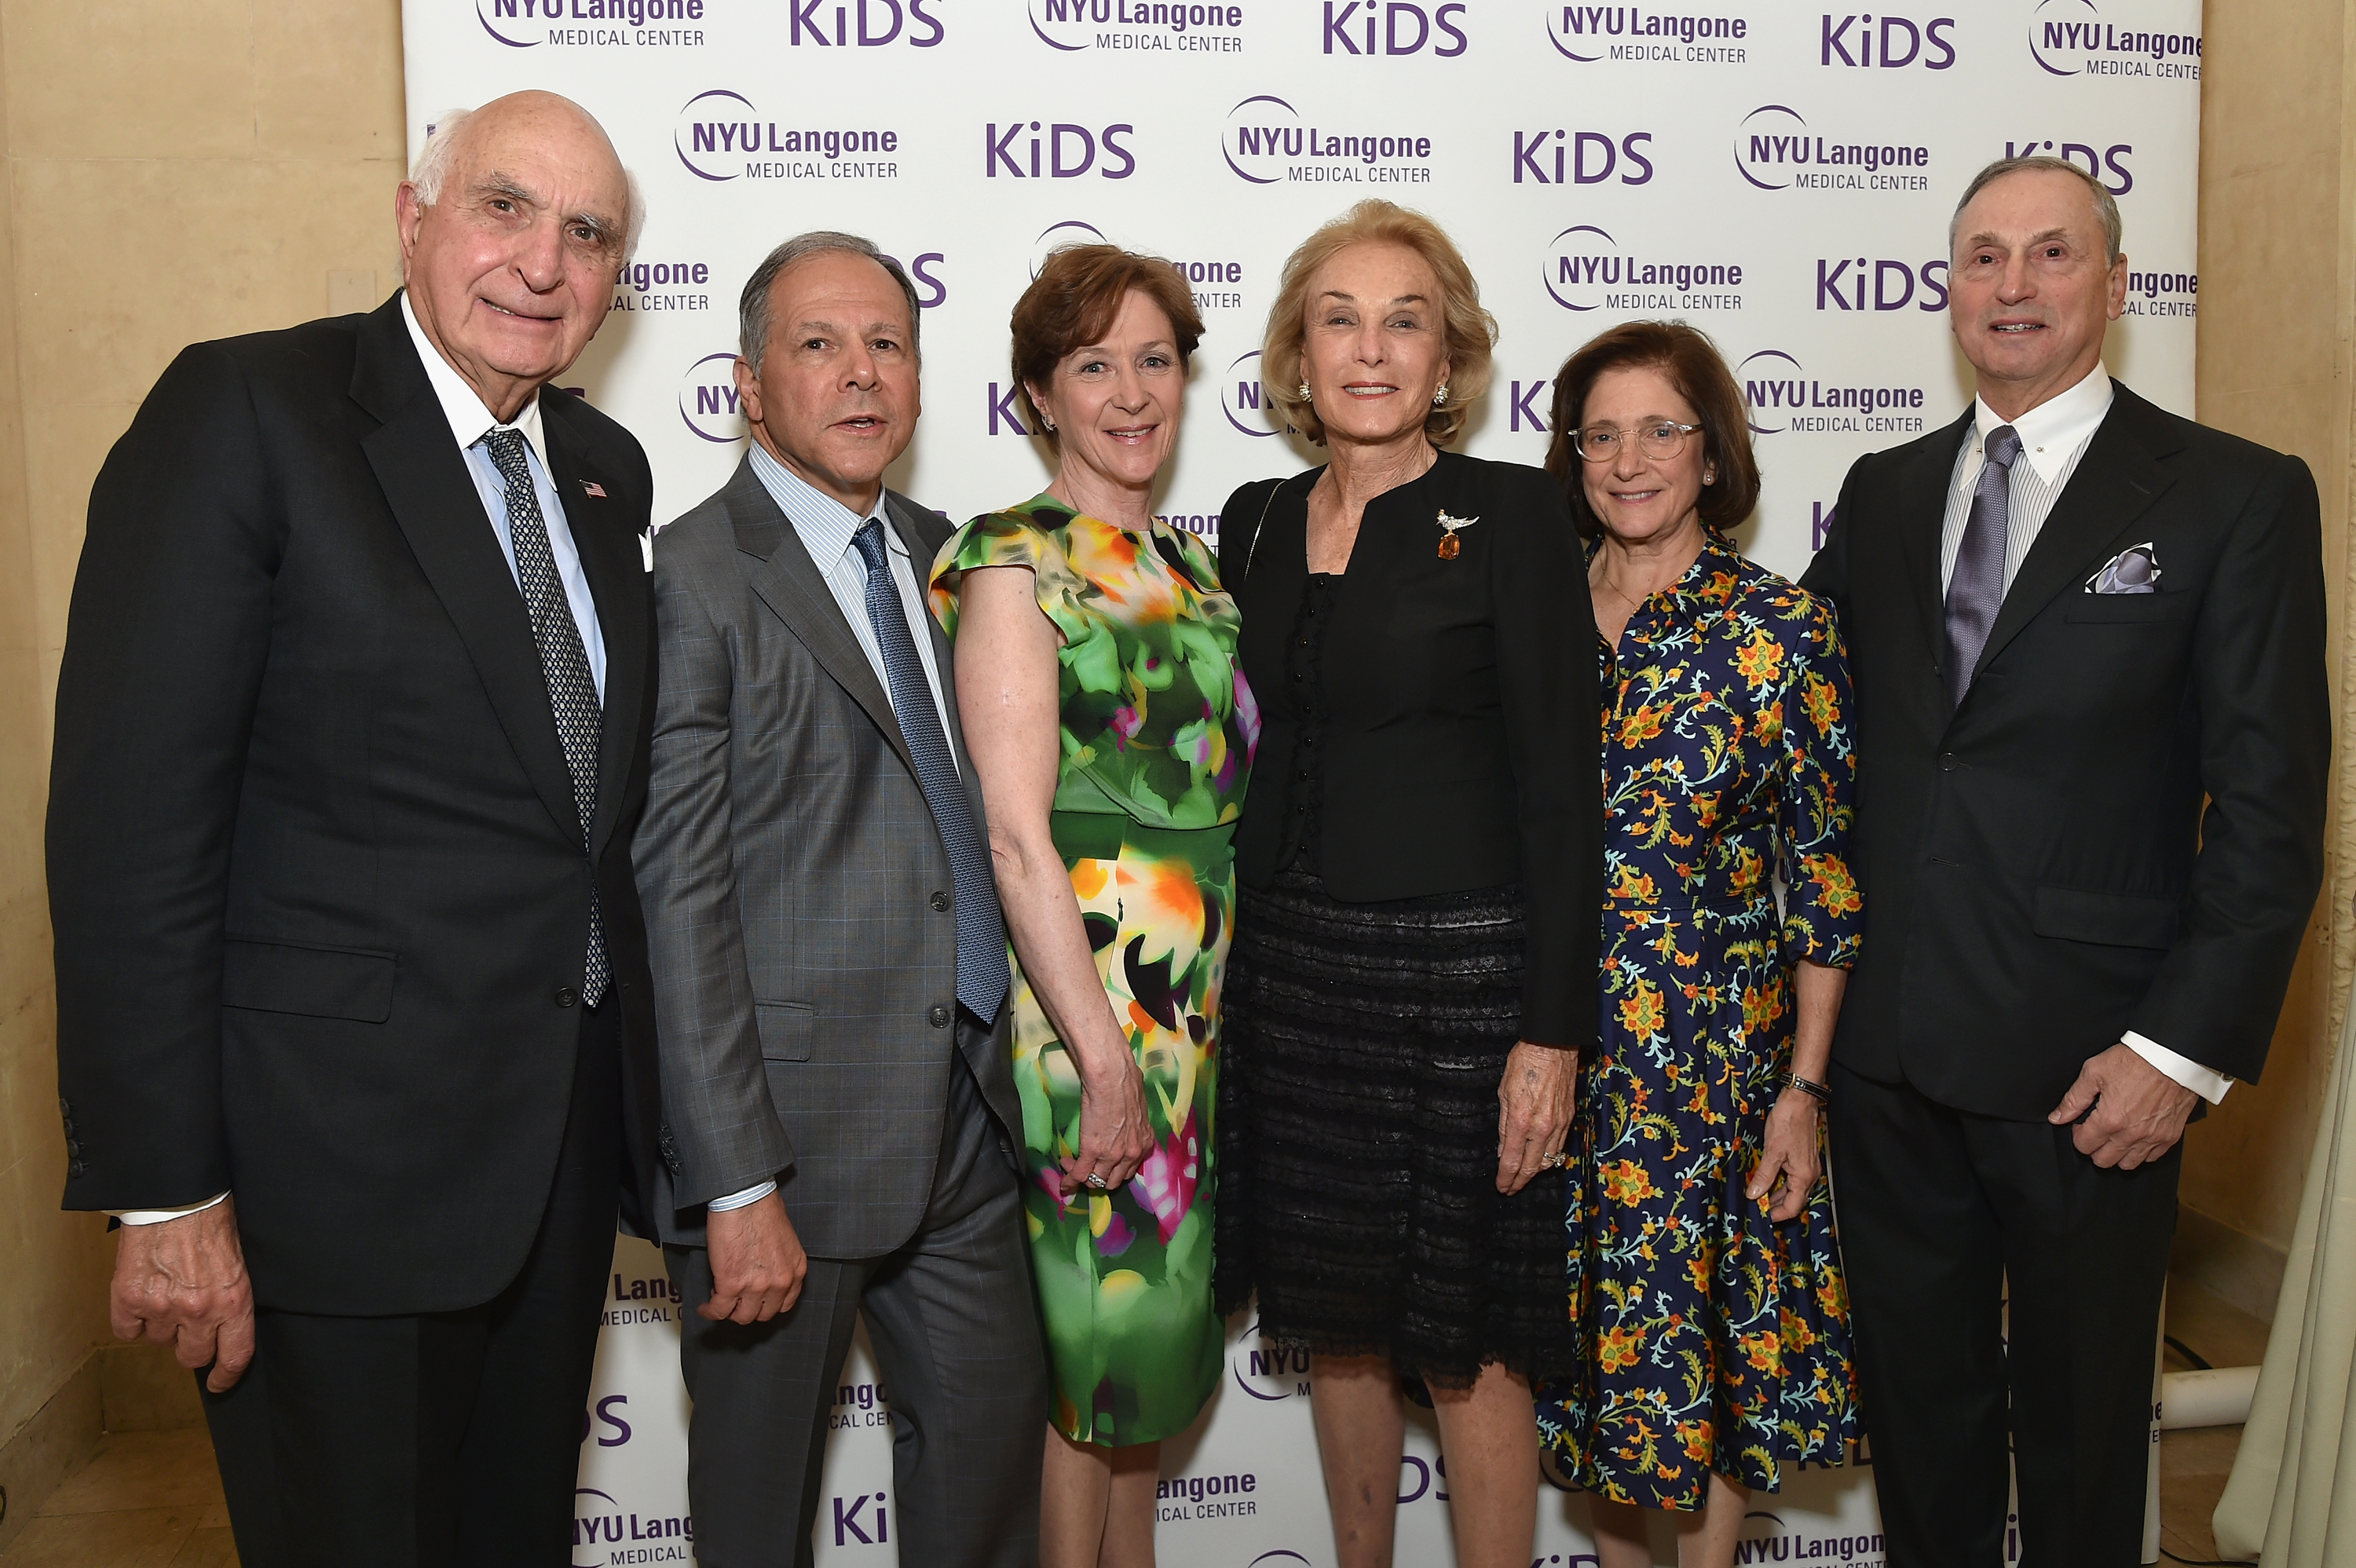 Spotted: Hoda Kotb Supports KiDS of NYU Langone's 25th